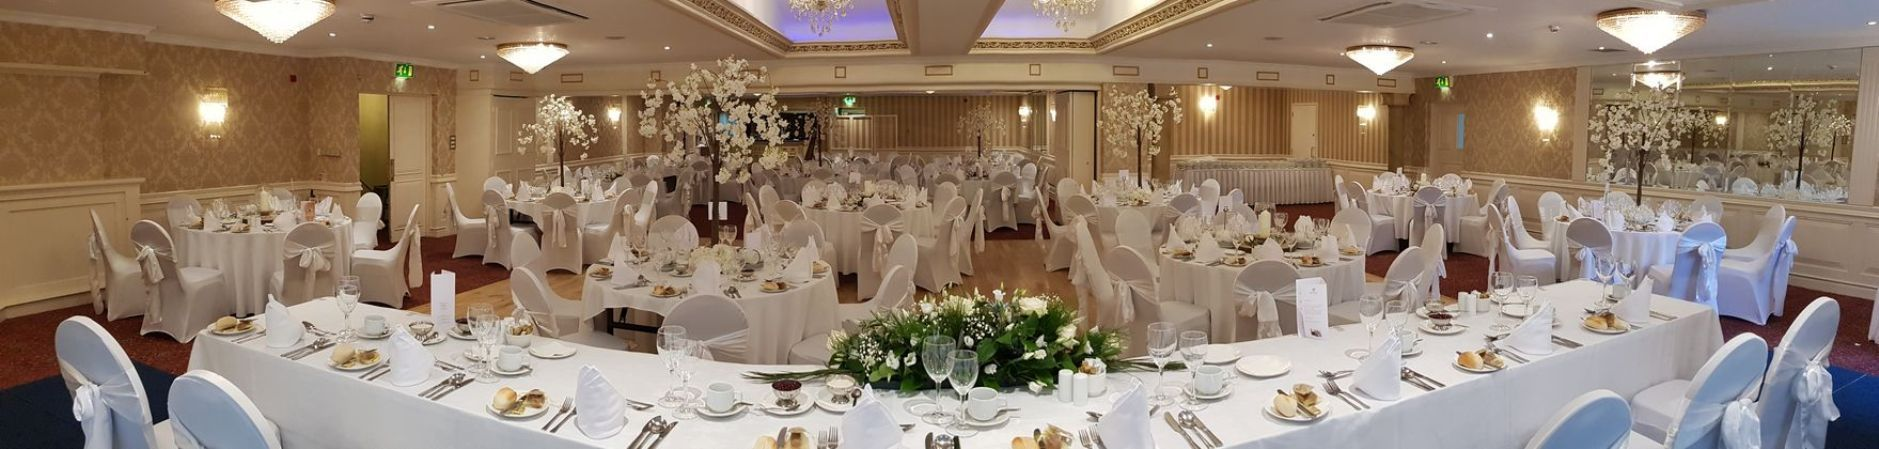 Wedding Venue Bushtown Hotel Coleraine Londonderry